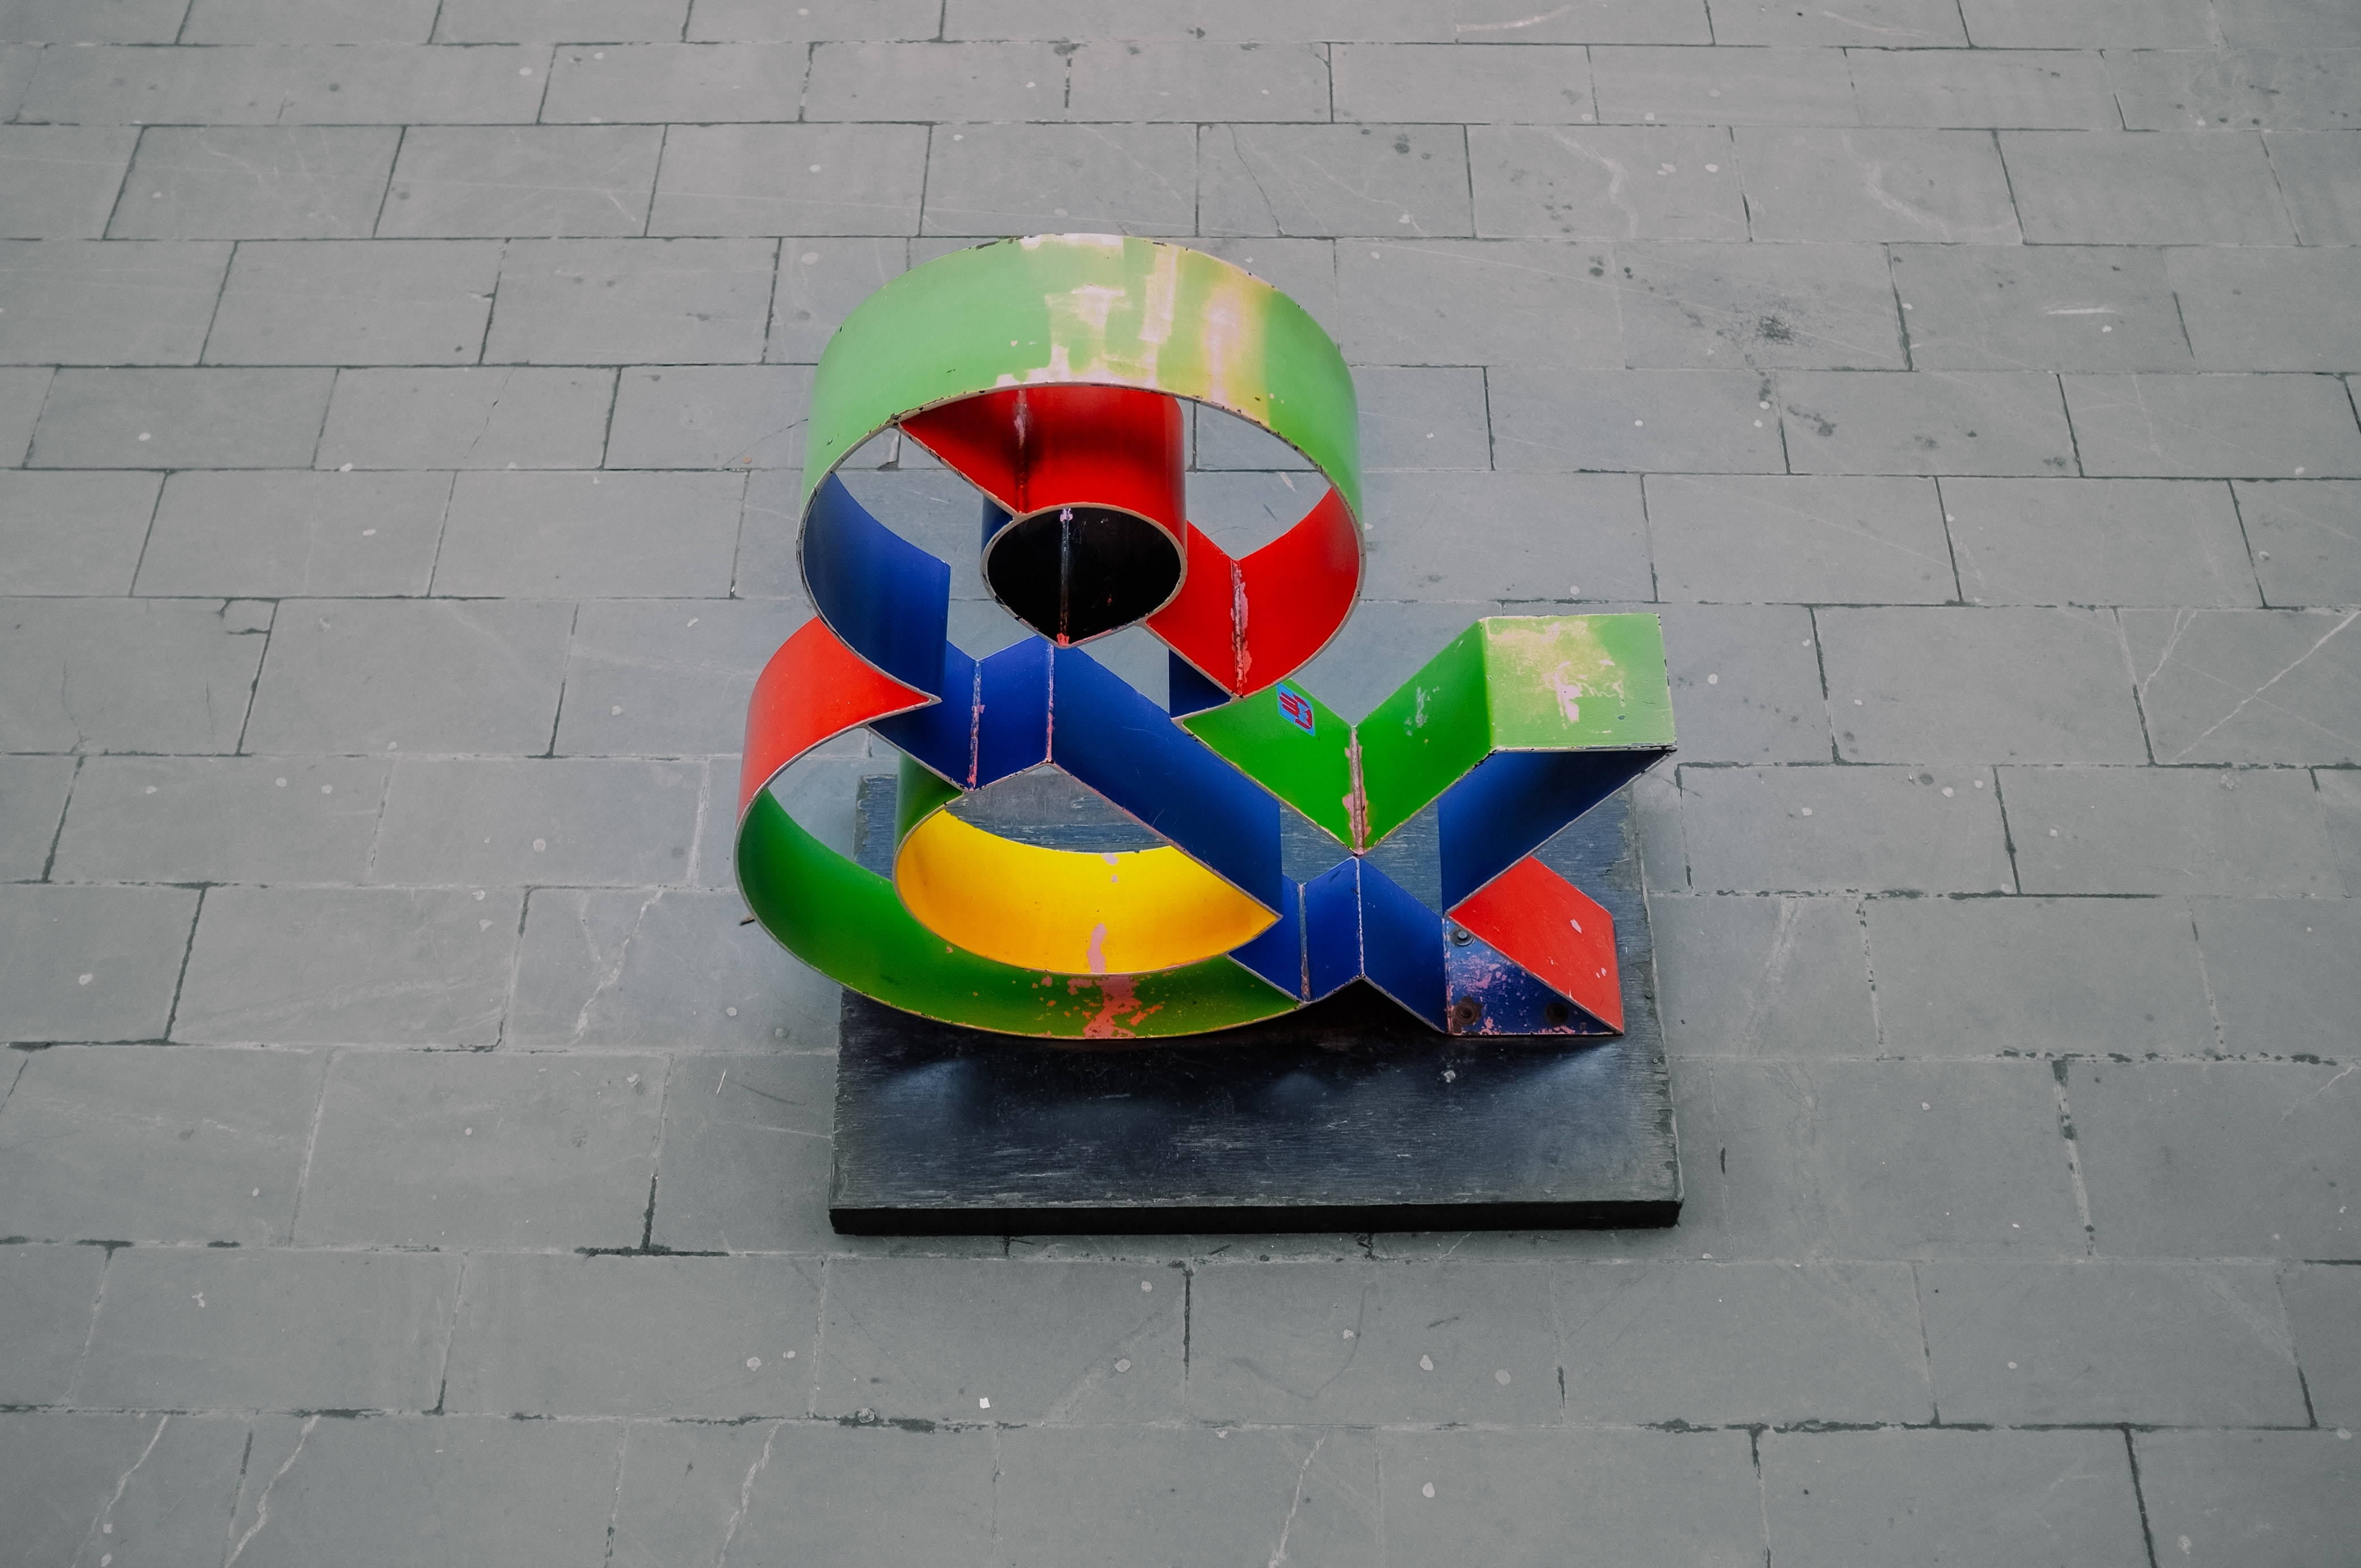 A color and symbol statue outside.